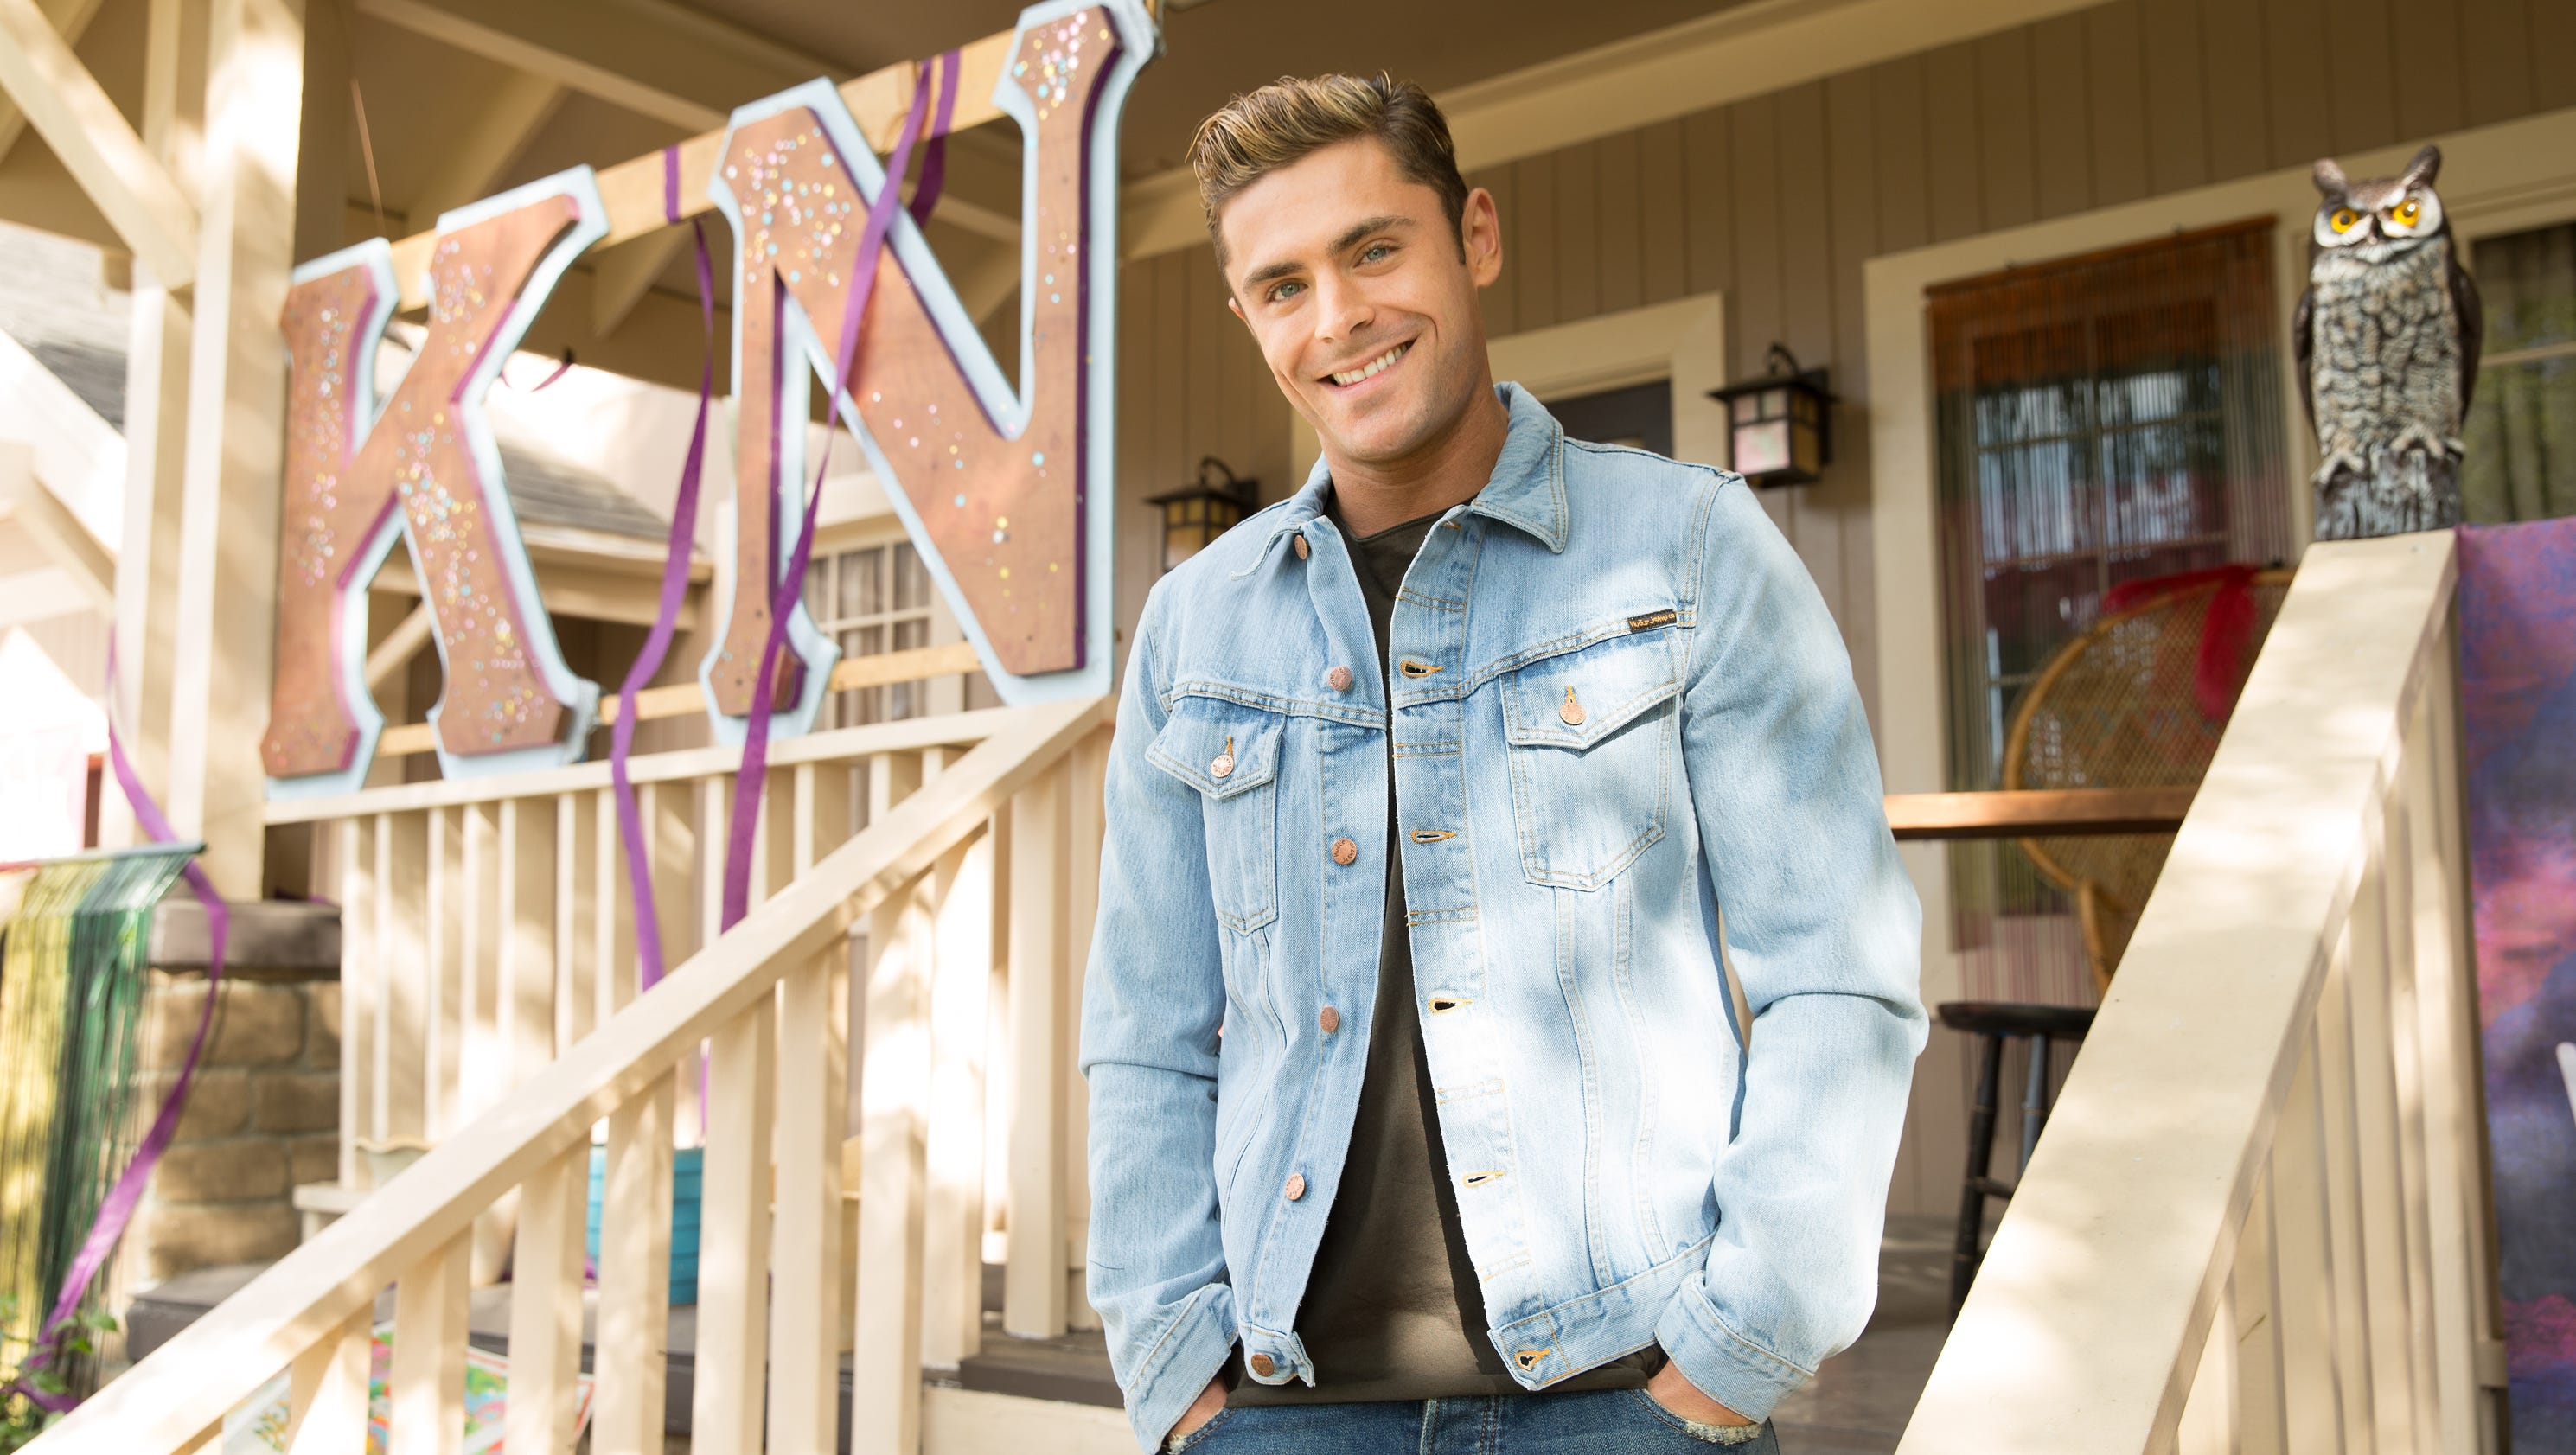 Zac Efron: The new R-rated comedy king